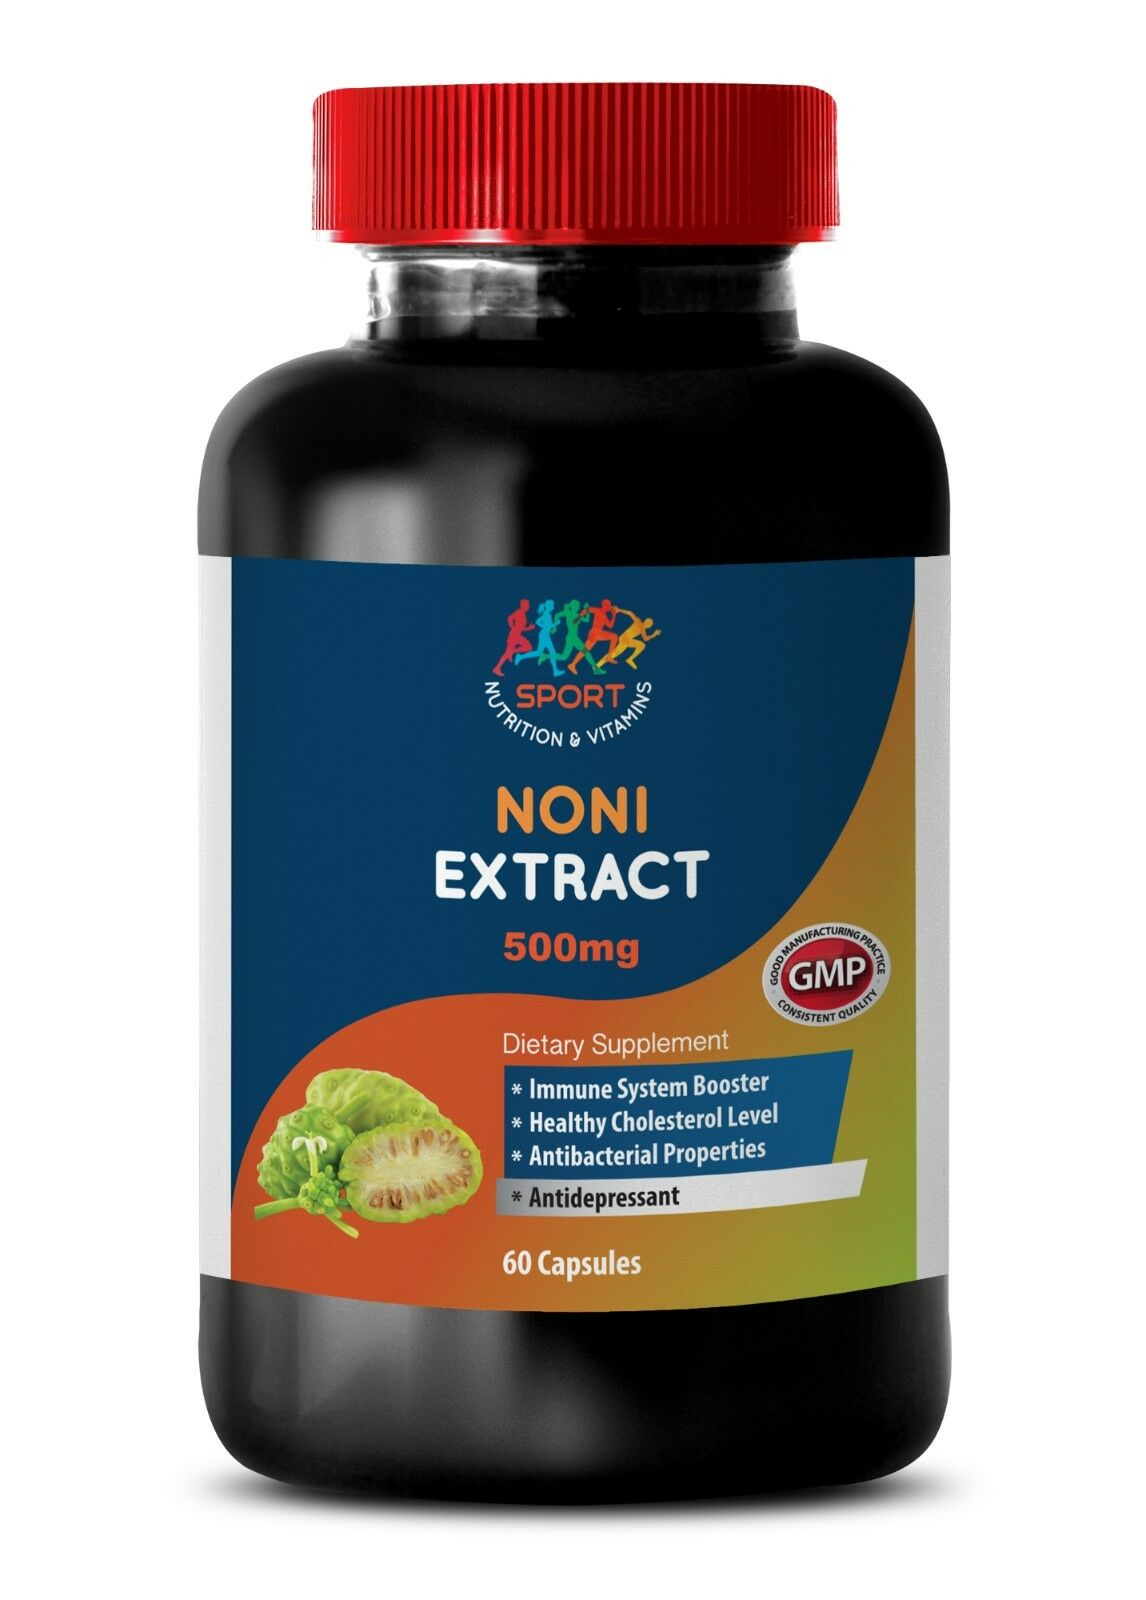 Weight Loss - Noni Extract 500mg 1b - Noni Amazing